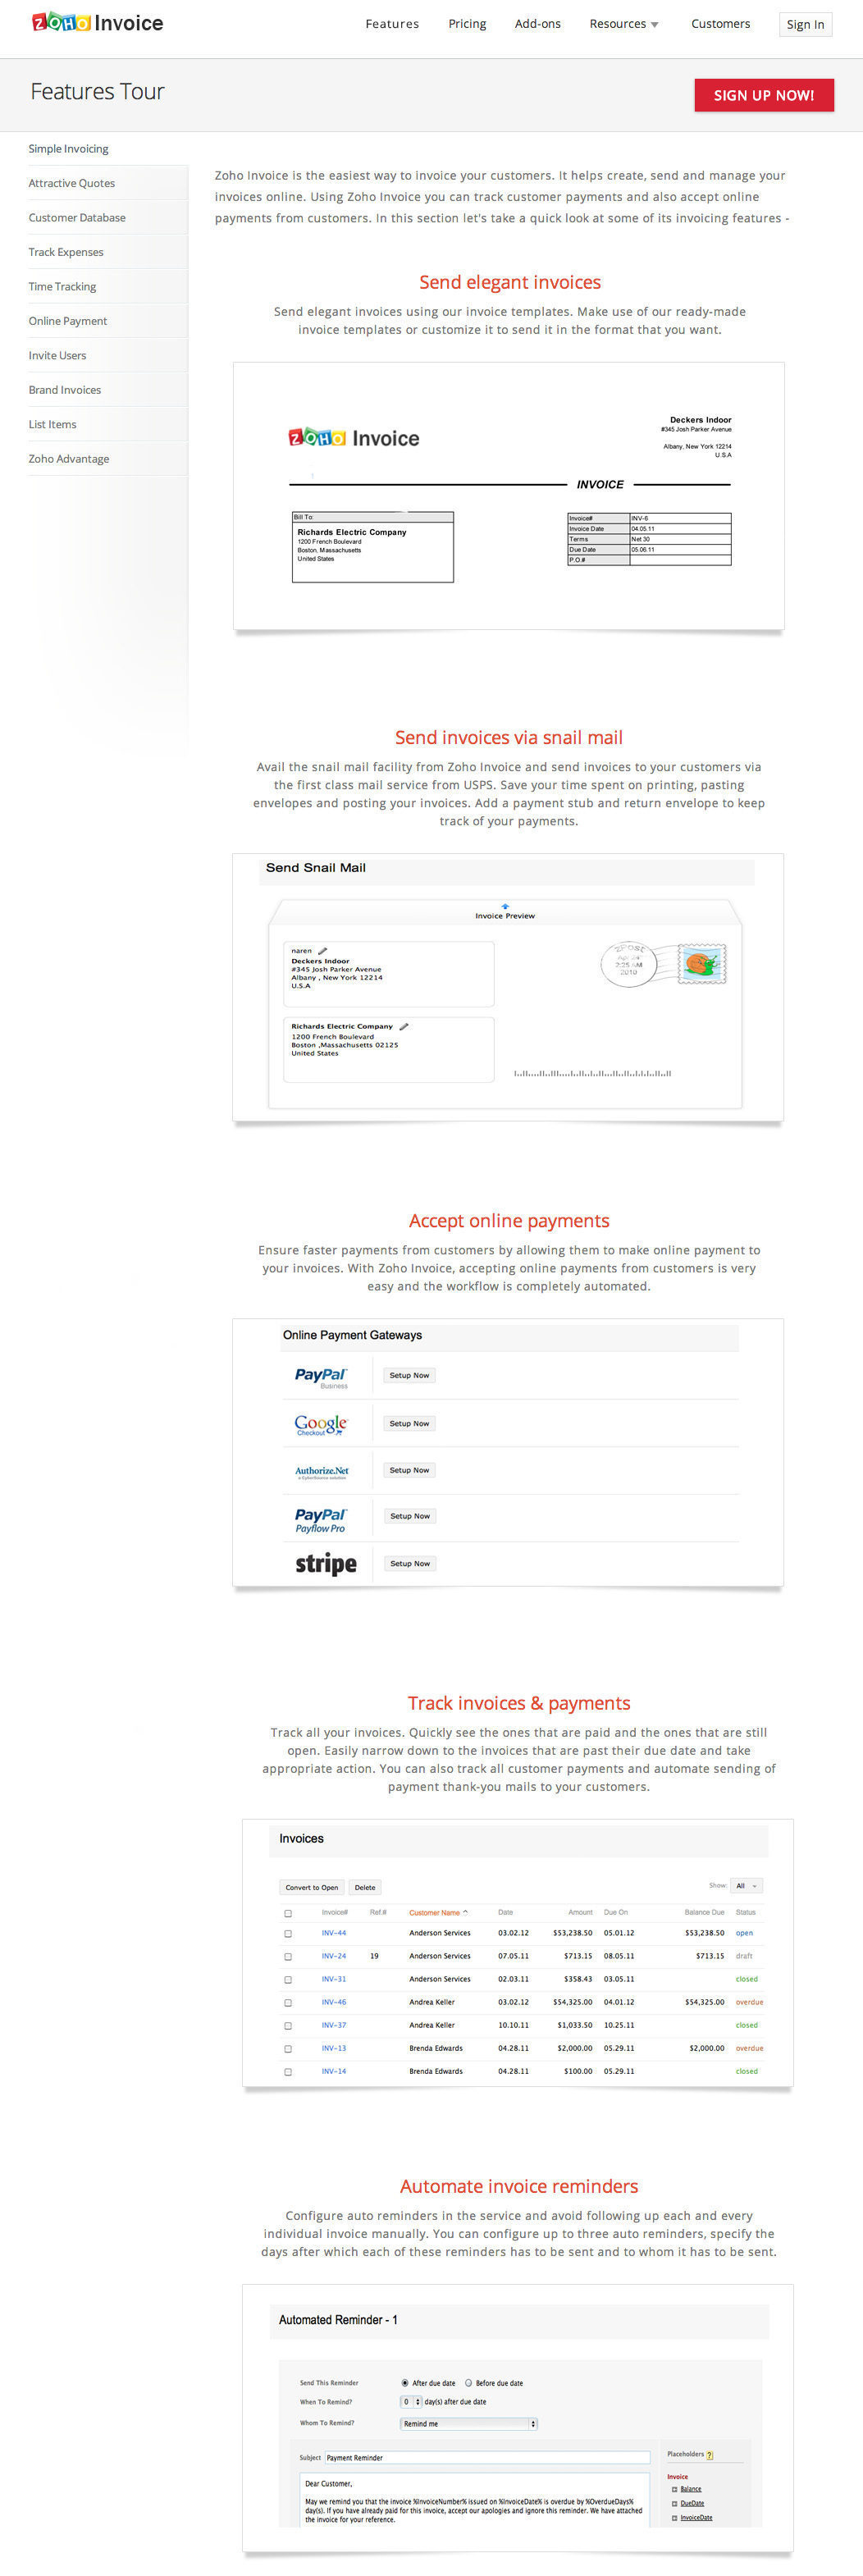 Hius  Stunning Top  Complaints And Reviews About Zoho Invoice With Remarkable Zoho Invoice Pricing Zoho Invoice  Simple Invoicing  With Adorable Commercial Invoice For Customs Also Invoice Approval In Addition How To Import Invoices Into Quickbooks And Free Pdf Invoice Template As Well As Definition Of An Invoice Additionally Payable Invoices From Consumeraffairscom With Hius  Remarkable Top  Complaints And Reviews About Zoho Invoice With Adorable Zoho Invoice Pricing Zoho Invoice  Simple Invoicing  And Stunning Commercial Invoice For Customs Also Invoice Approval In Addition How To Import Invoices Into Quickbooks From Consumeraffairscom